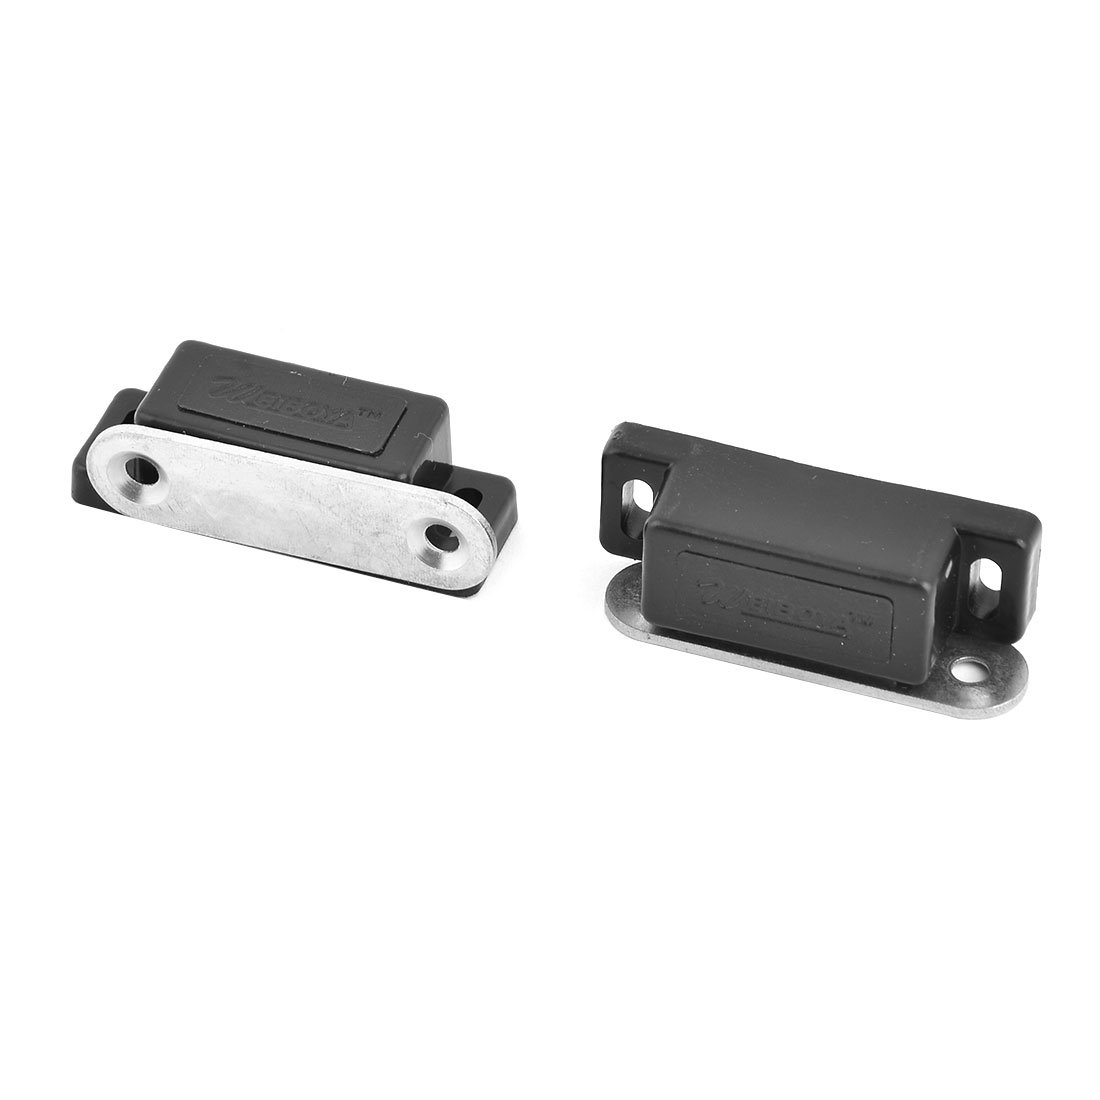 uxcell Plastic Household Cabinet Door Stopper Holder Magnetic Catch Latch 2pcs Black